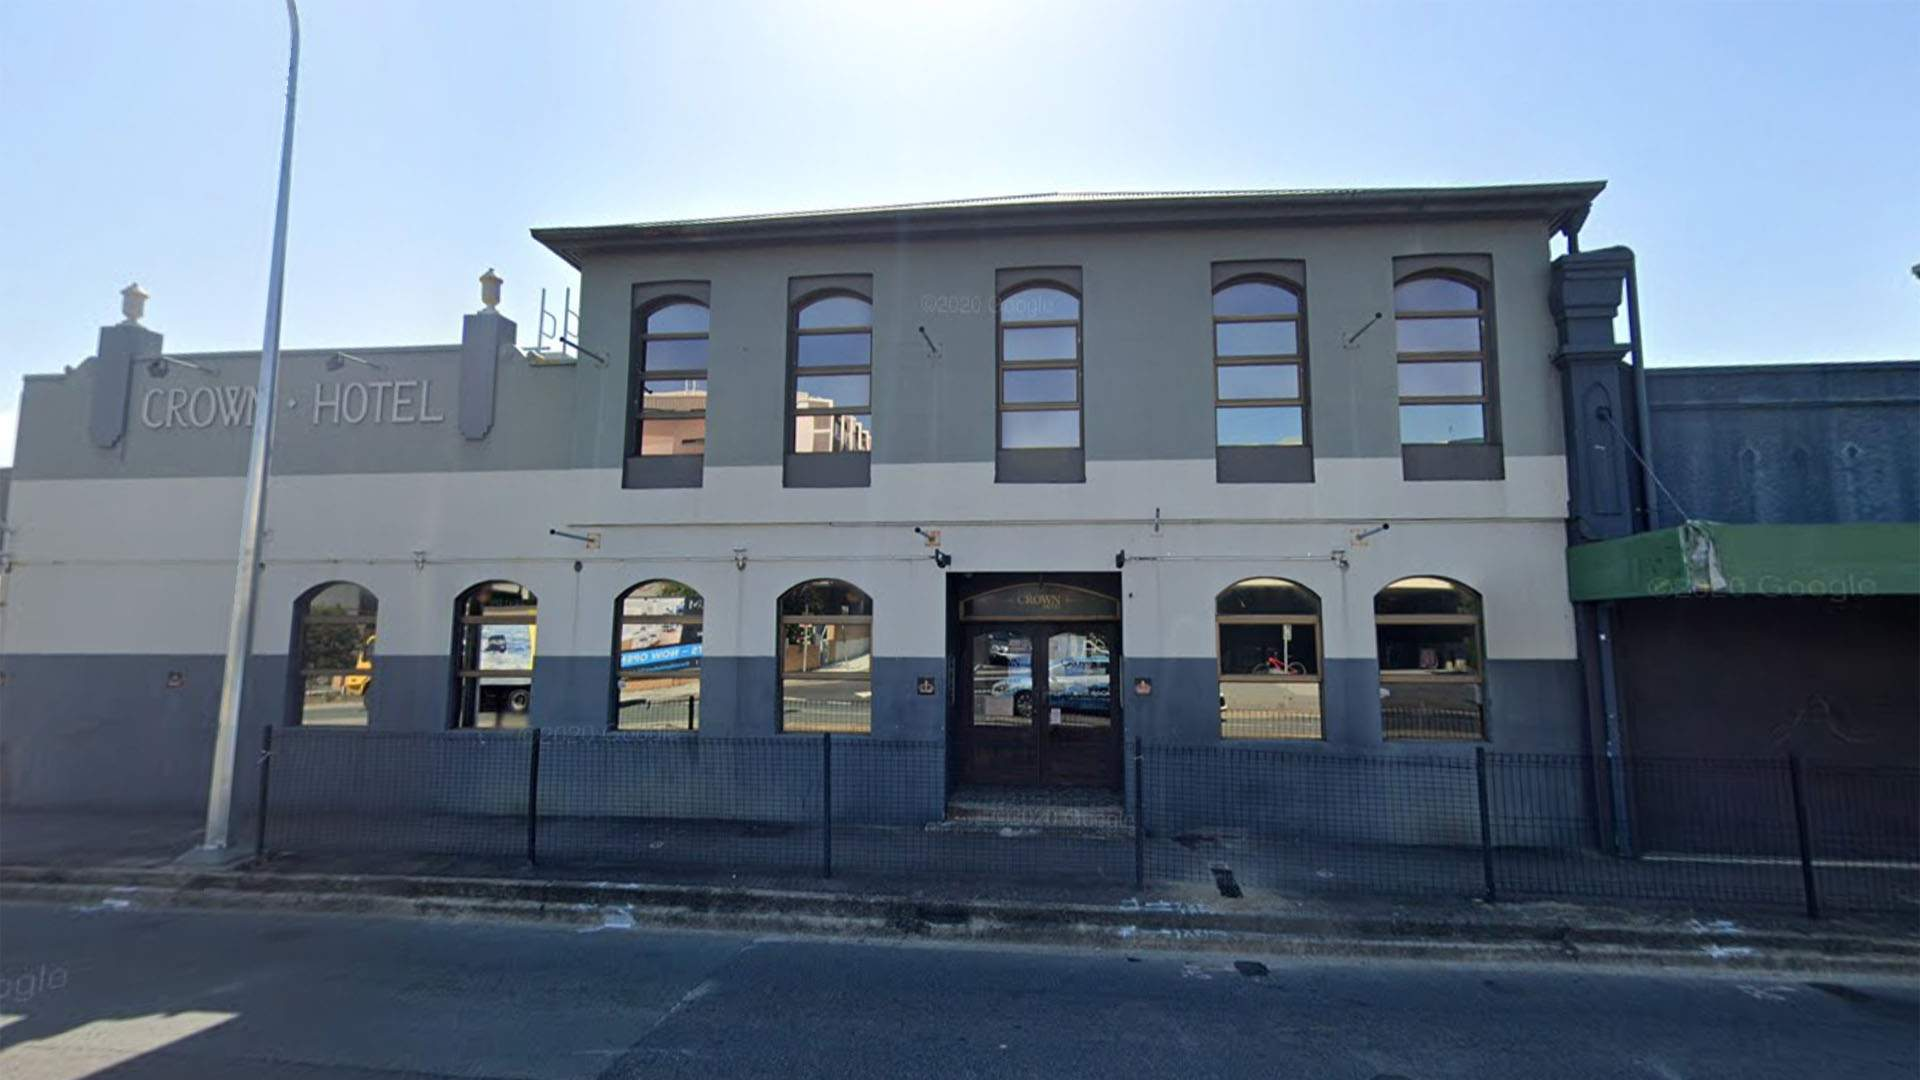 Lutwyche's 140-Year-Old Crown Hotel Will Reopen This Spring After a $2.4 Million Revamp